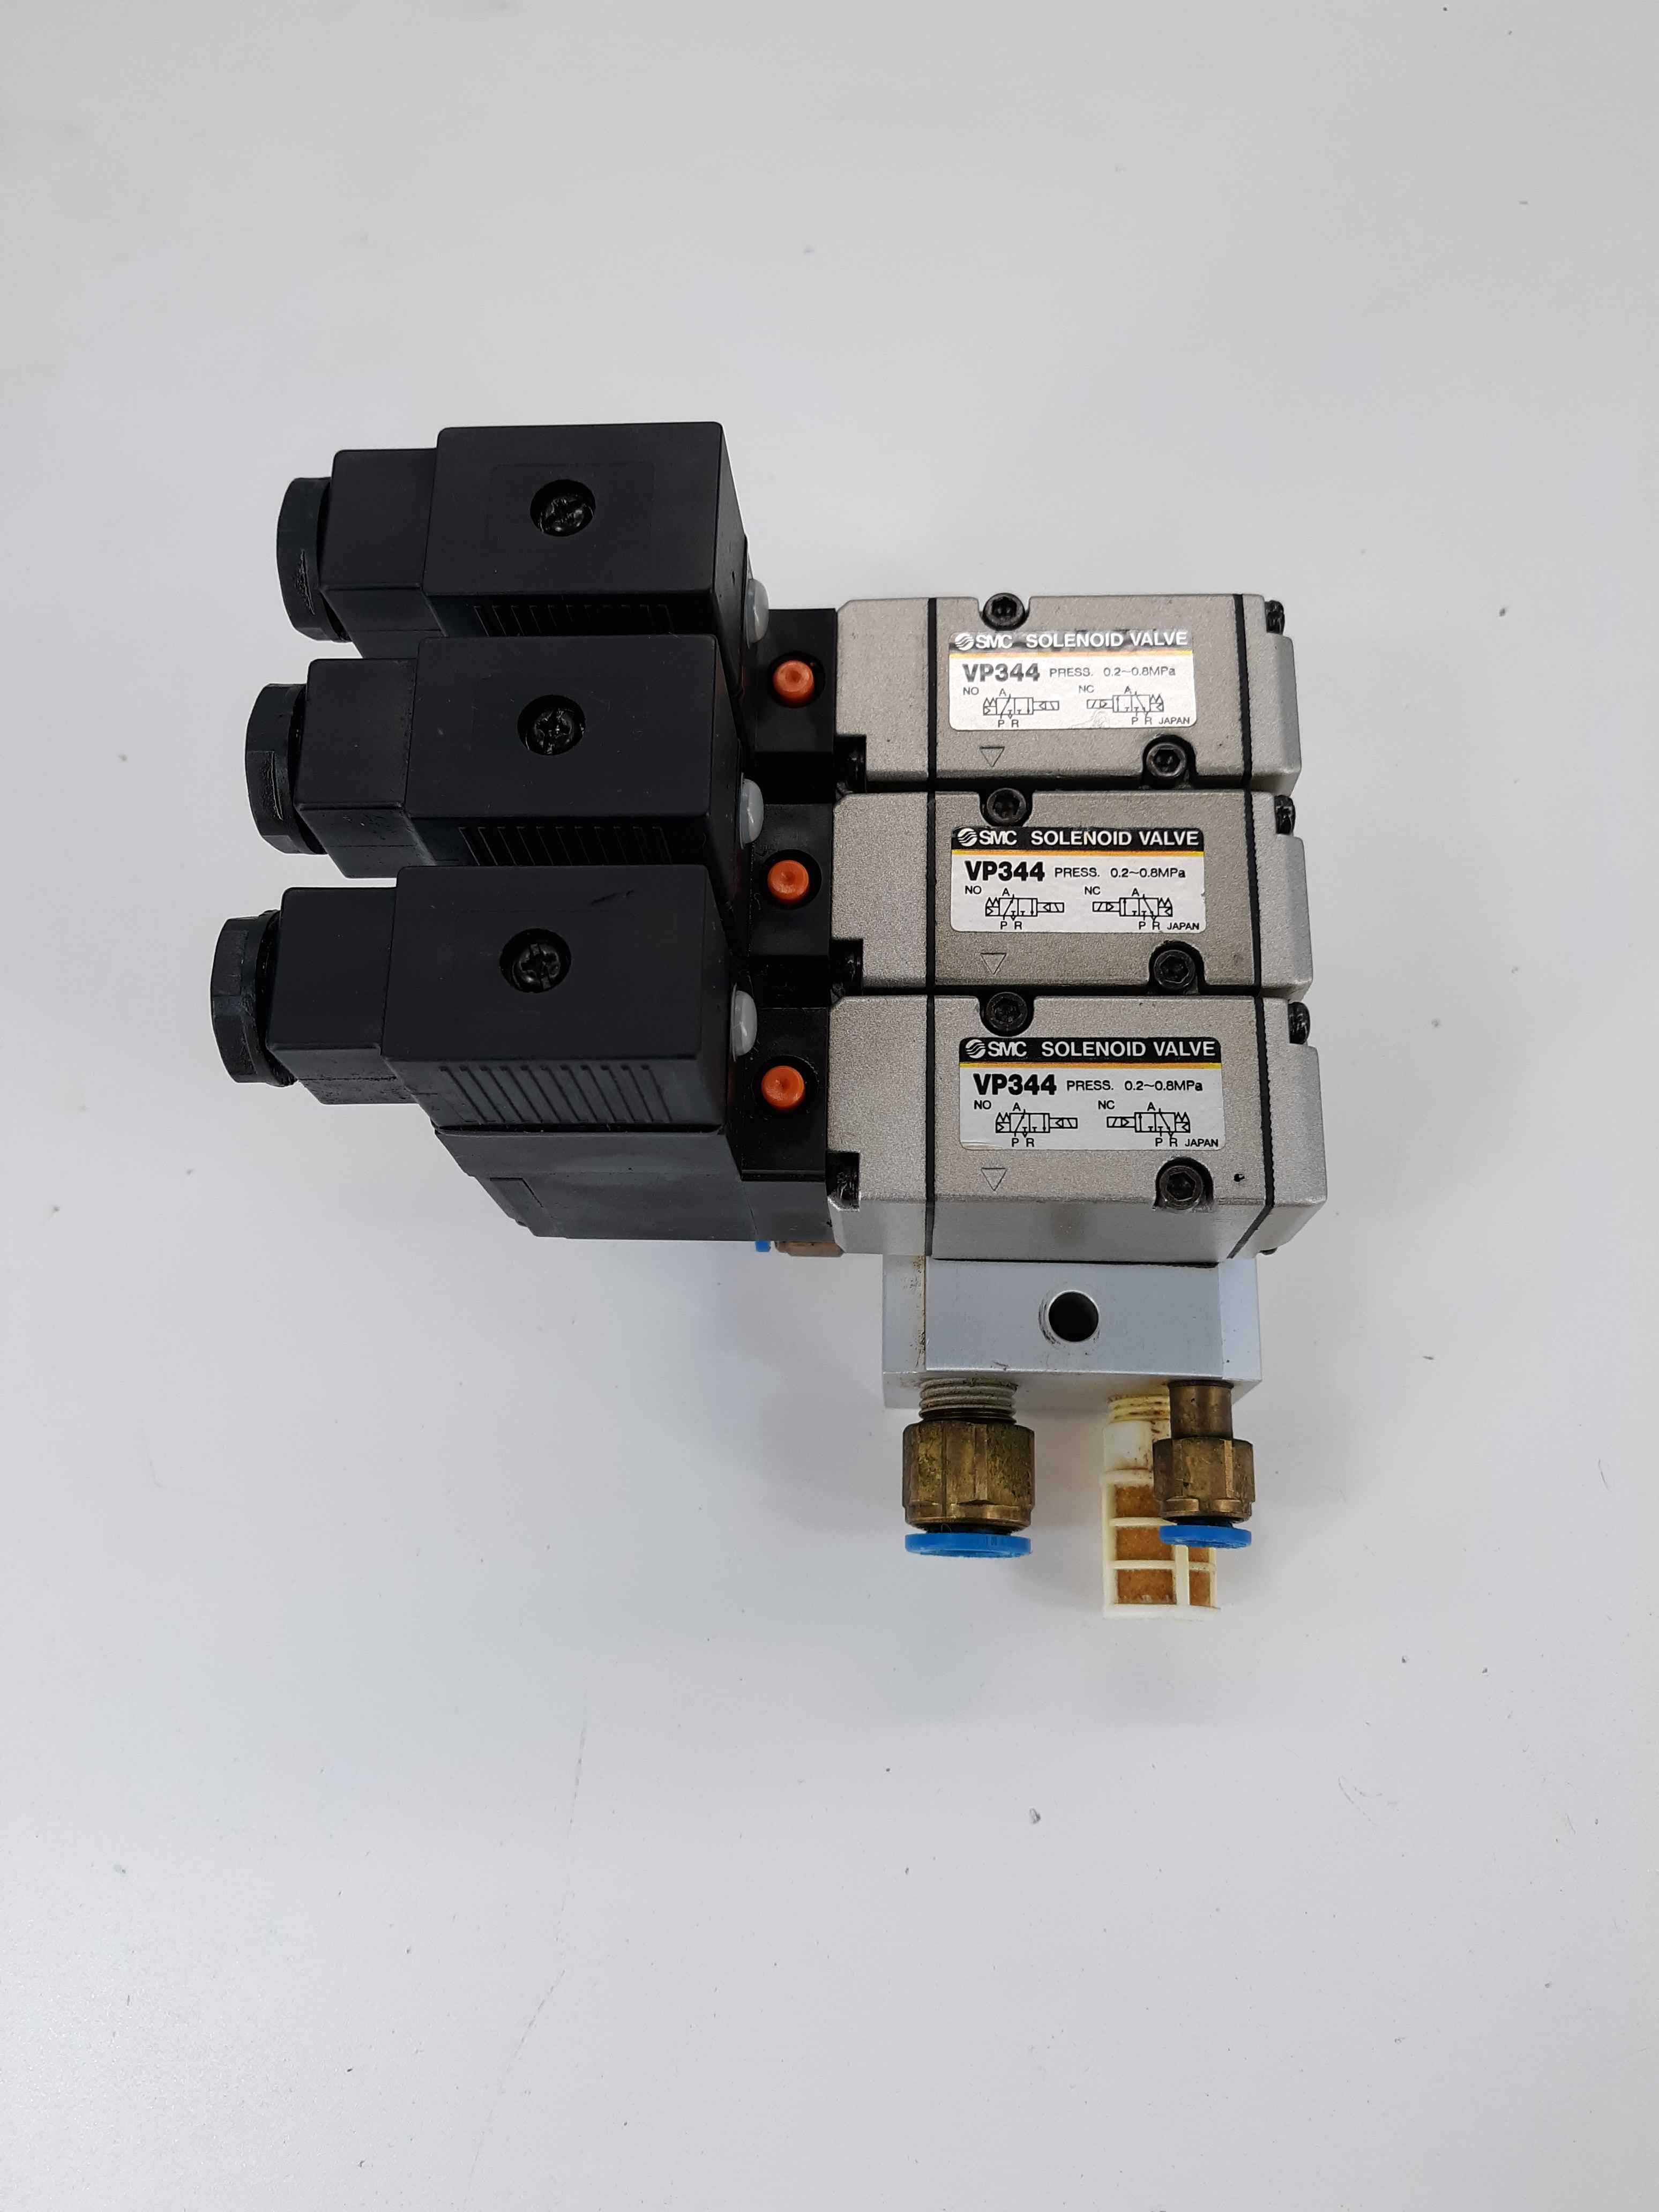 SMC VP344 Solenoid Valve Assembly (3) w/Manifolds